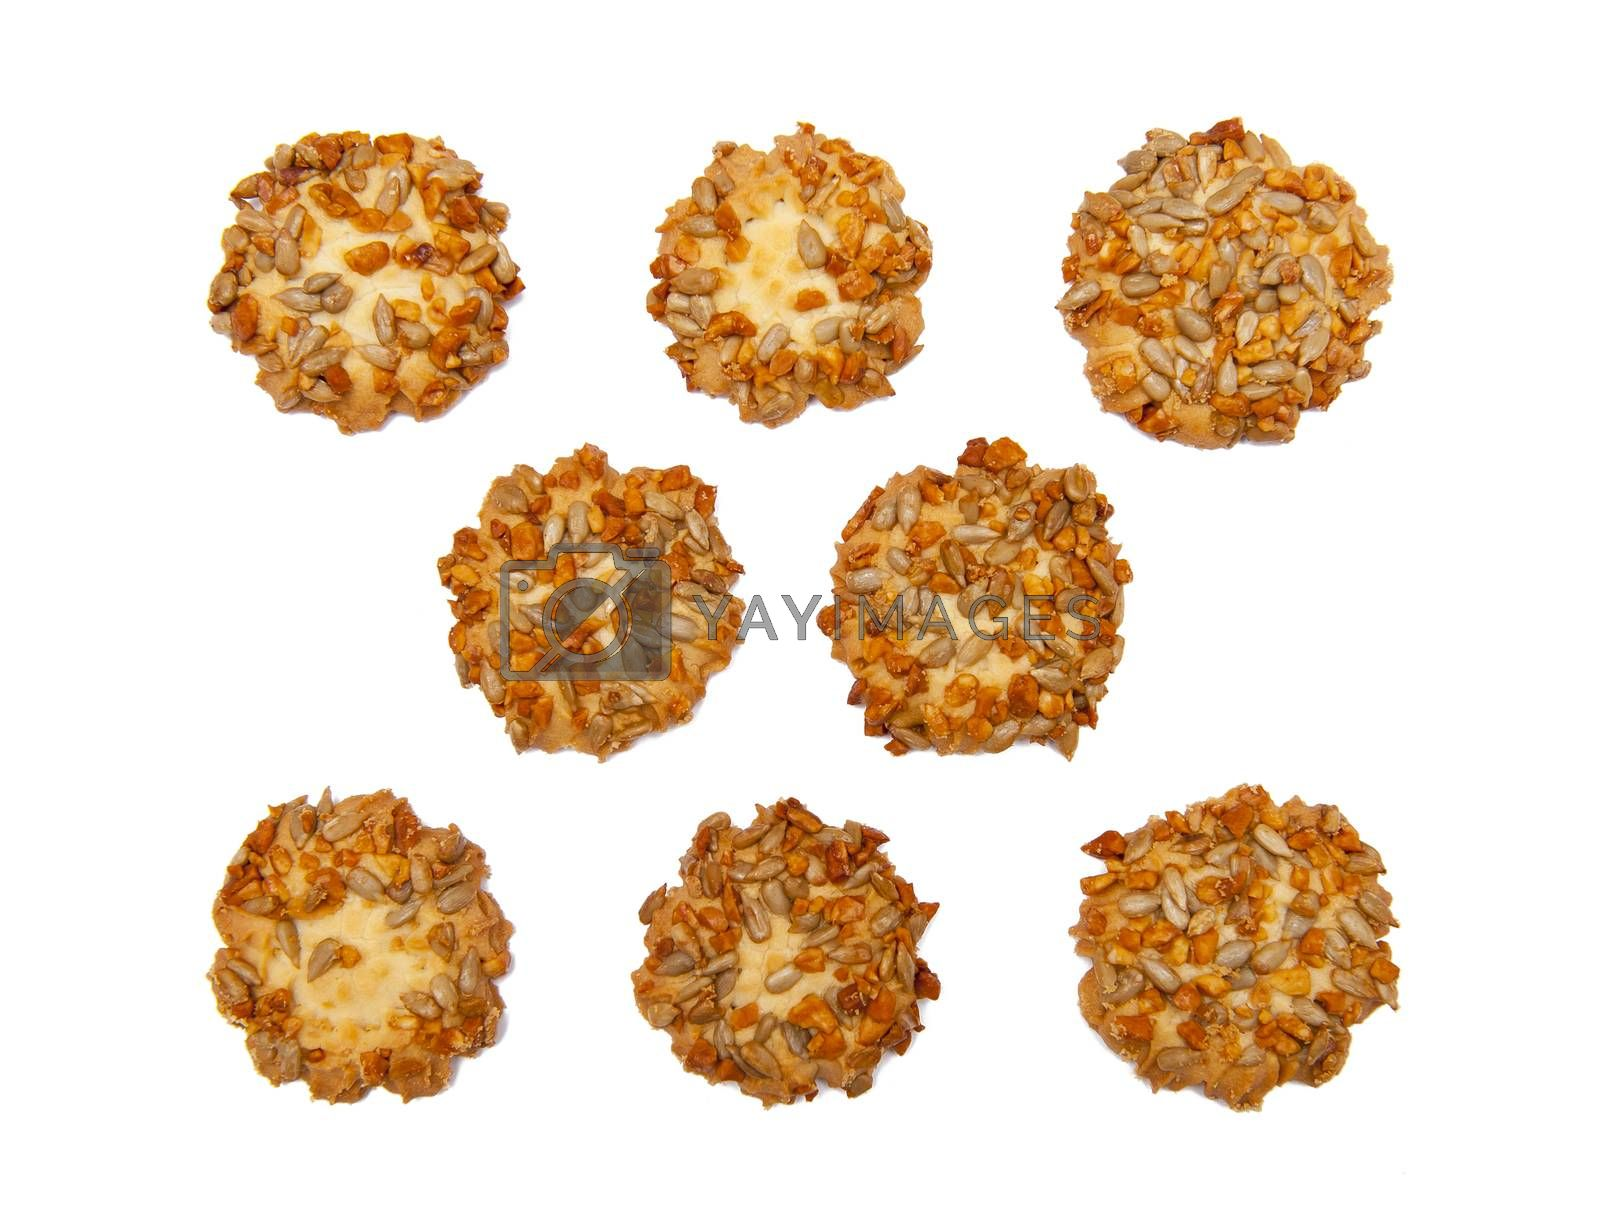 Cookies with nuts and sunflower seeds isolated on the white background